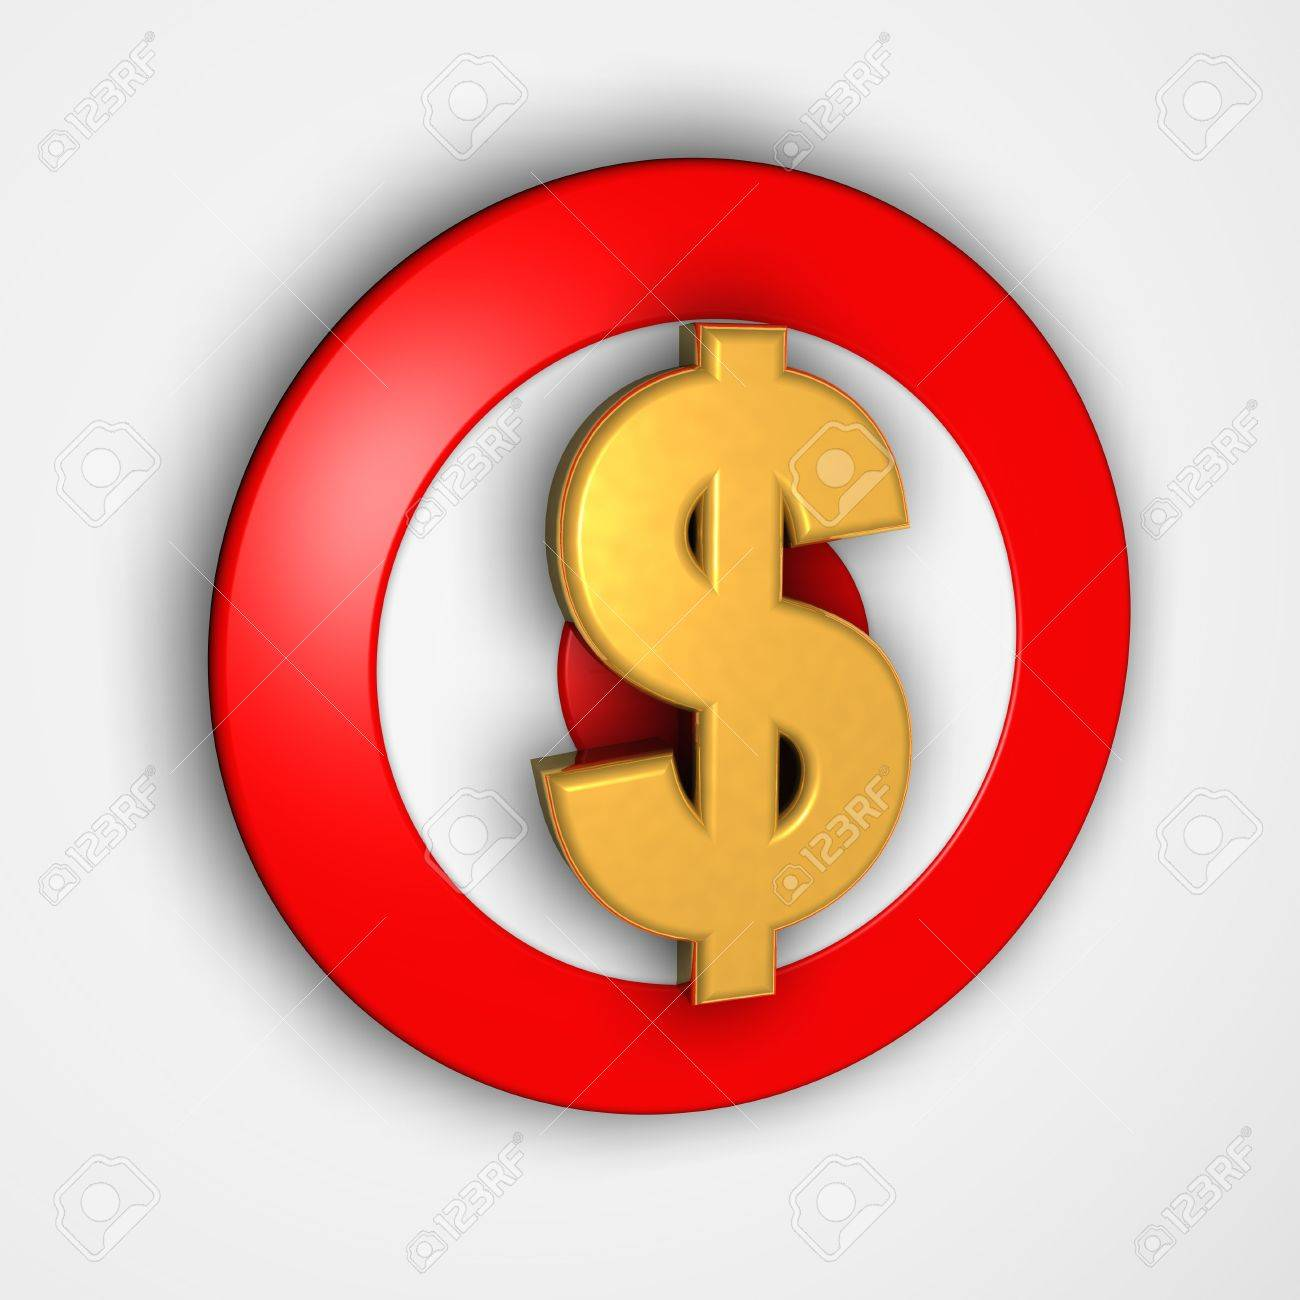 Dollar symbol on 3d target stock photo picture and royalty free dollar symbol on 3d target stock photo 520005 buycottarizona Image collections